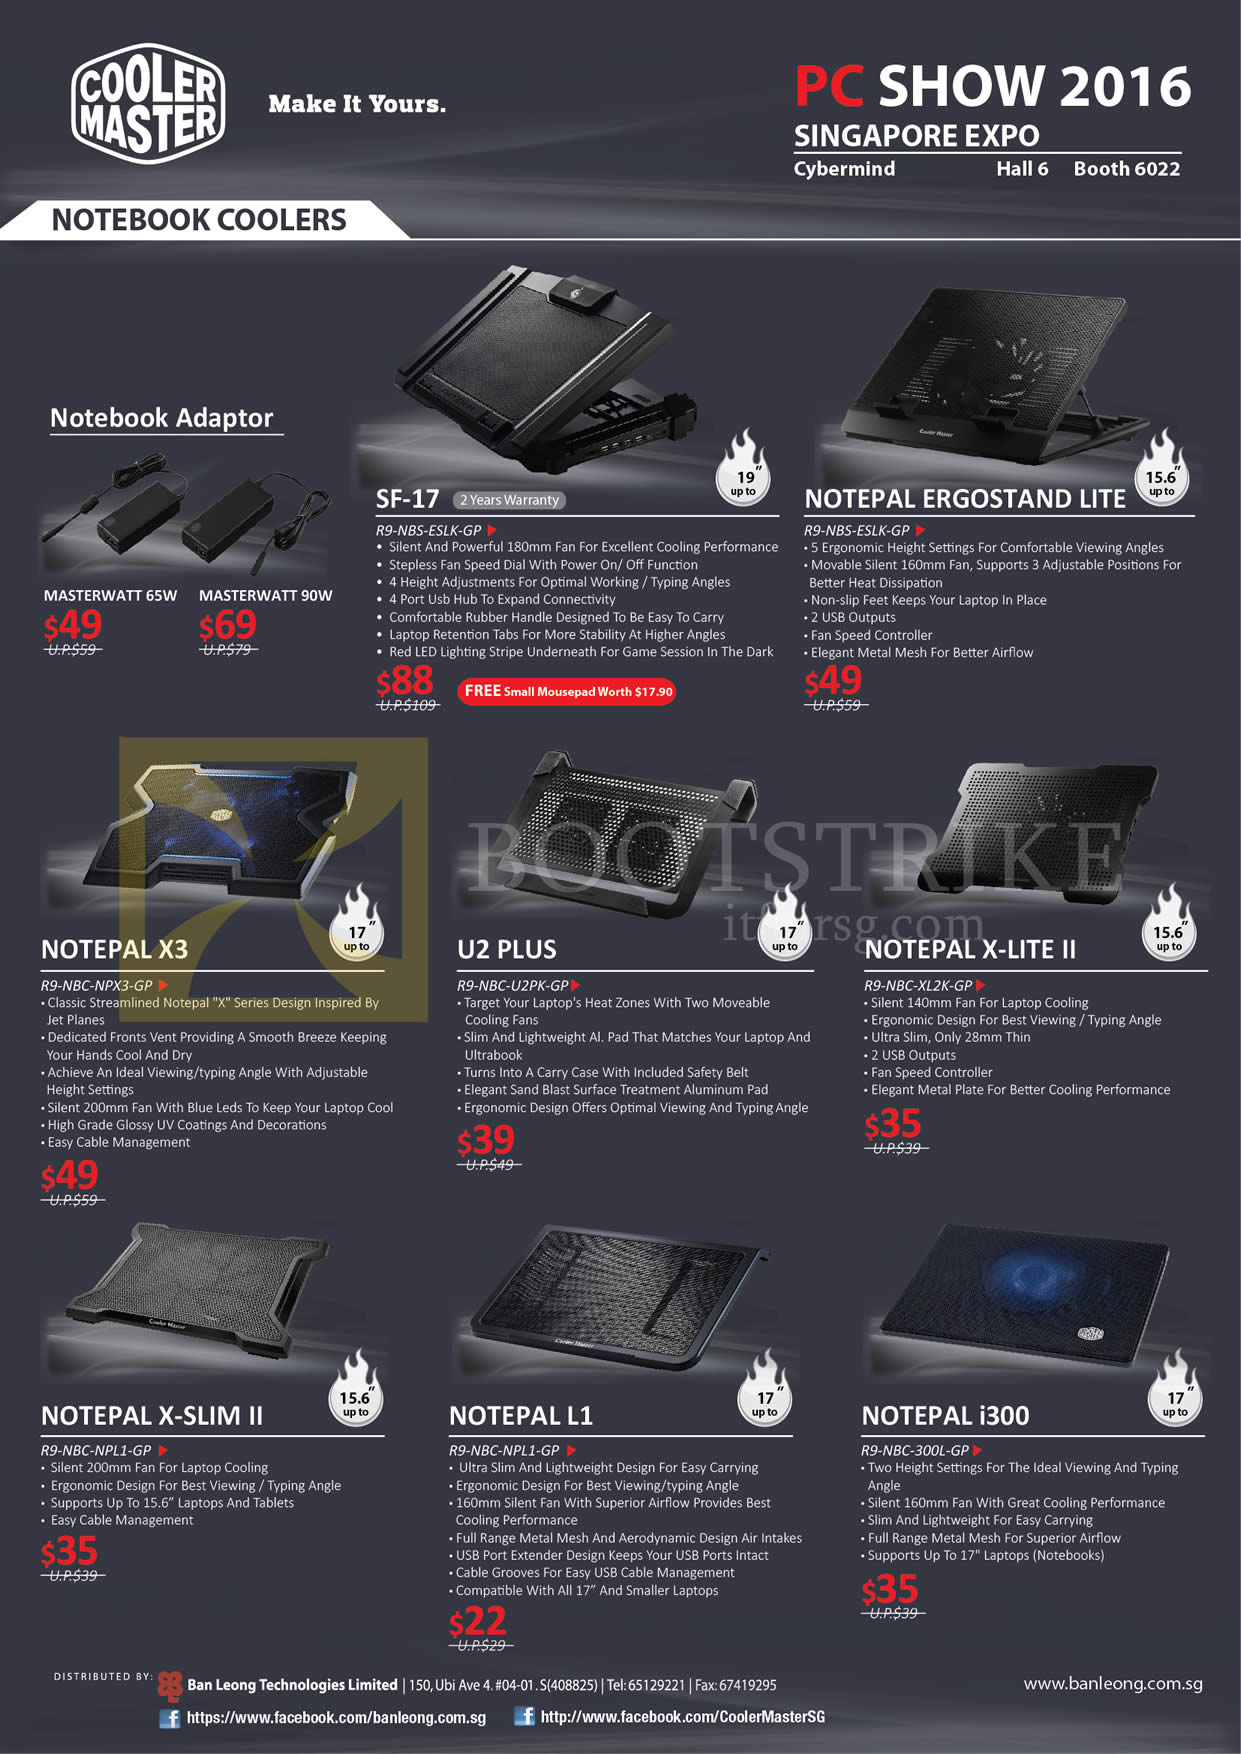 PC SHOW 2016 price list image brochure of Cybermind Cooler Master Notebook Coolers, Notepal, U2 Plus